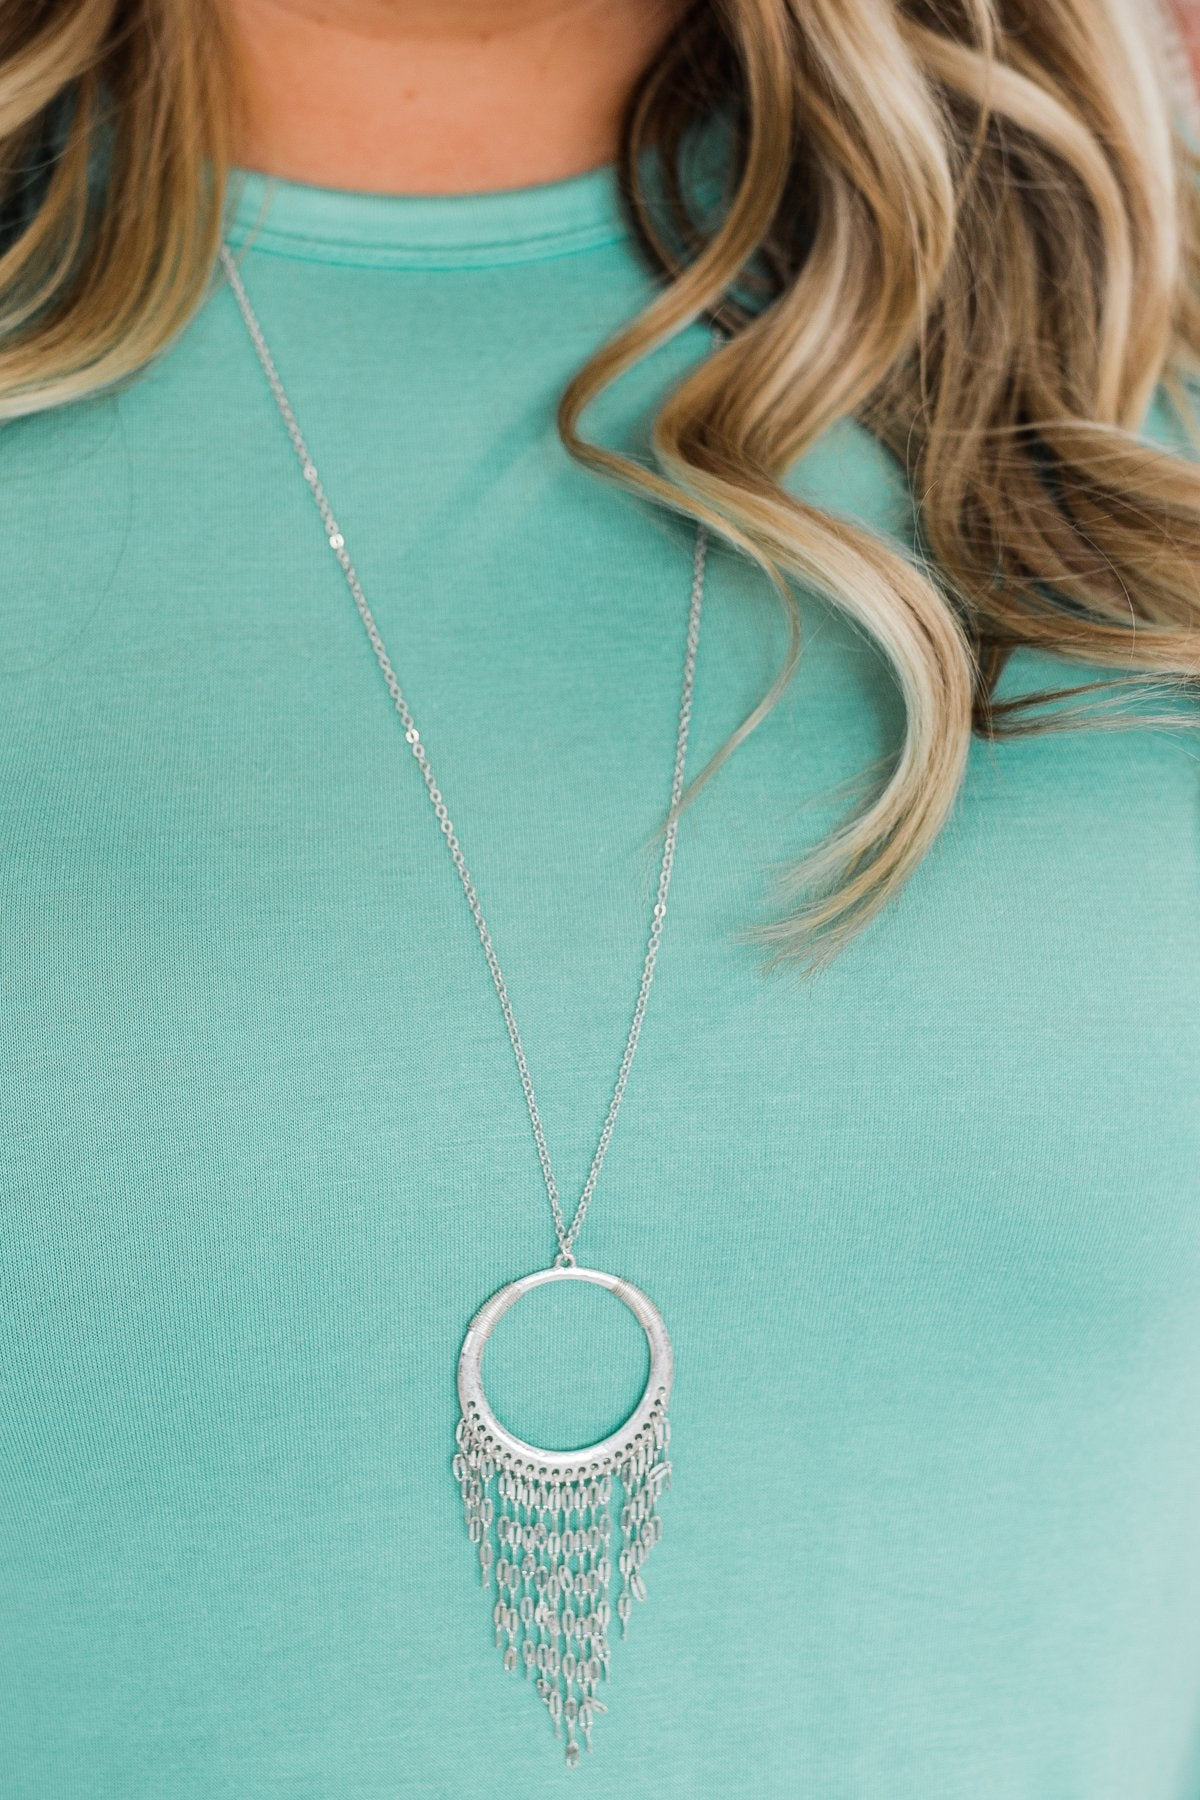 Fringed Circle Necklace- Silver